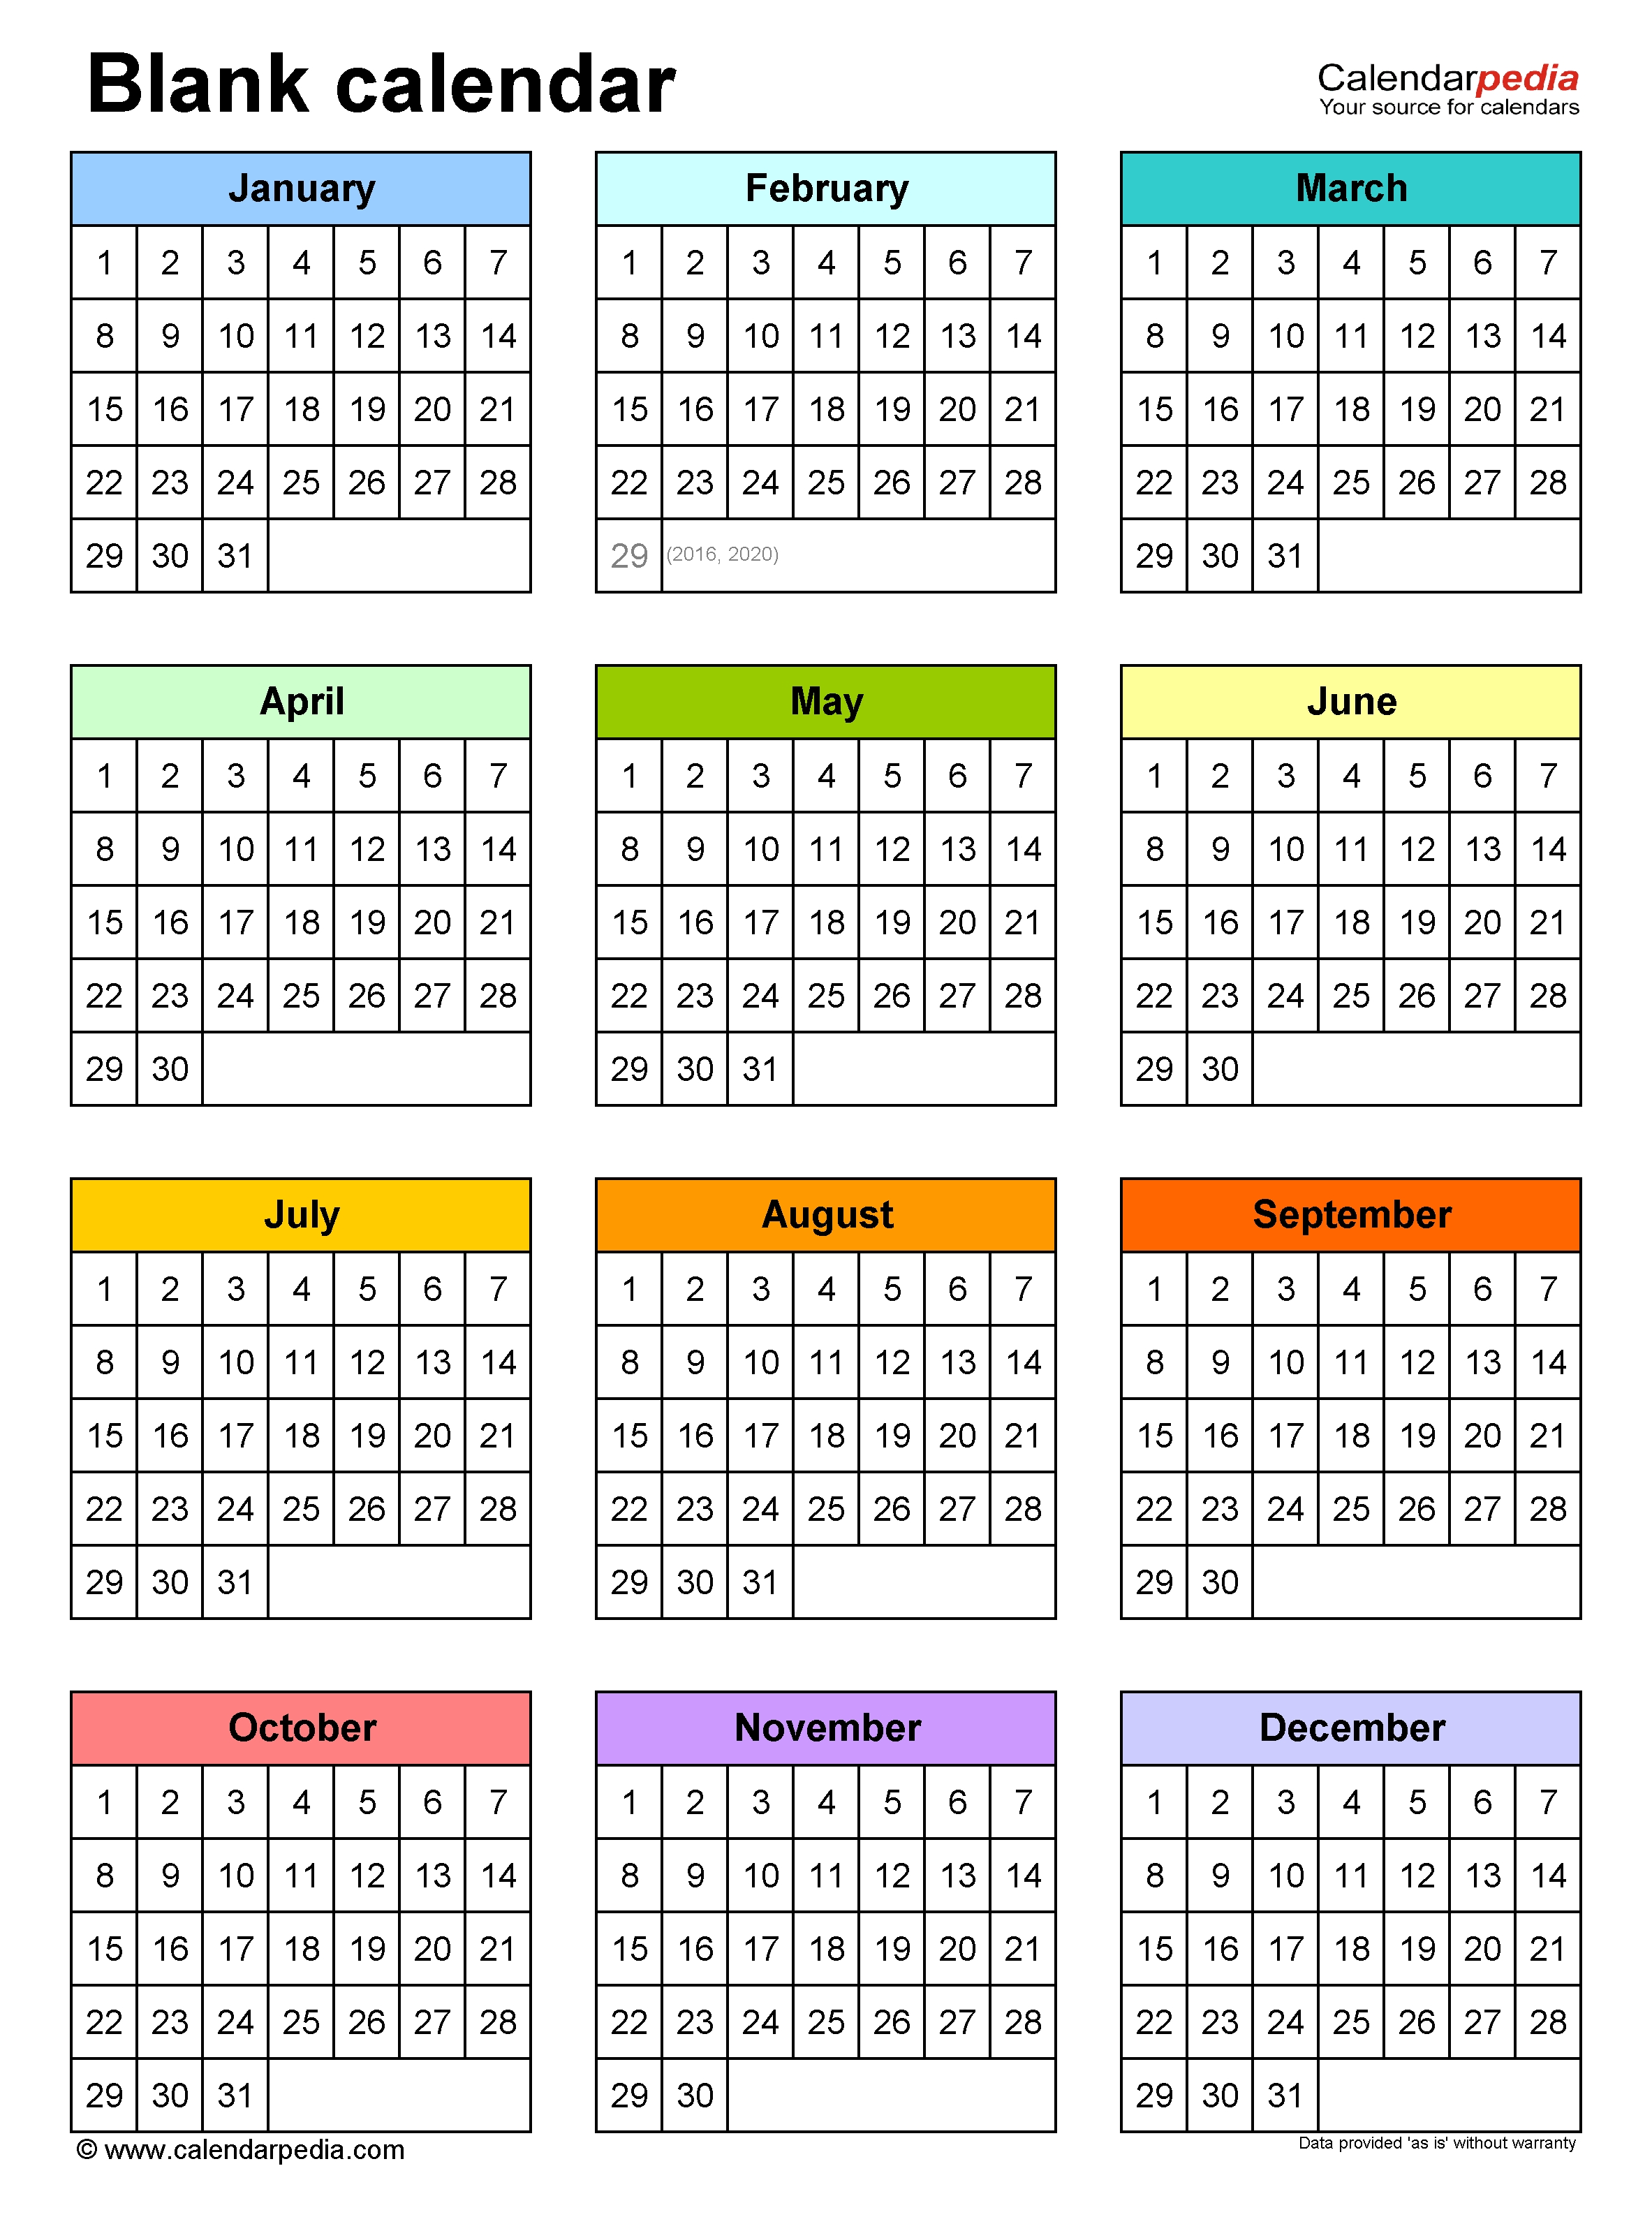 Blank Calendars - Free Printable Microsoft Word Templates